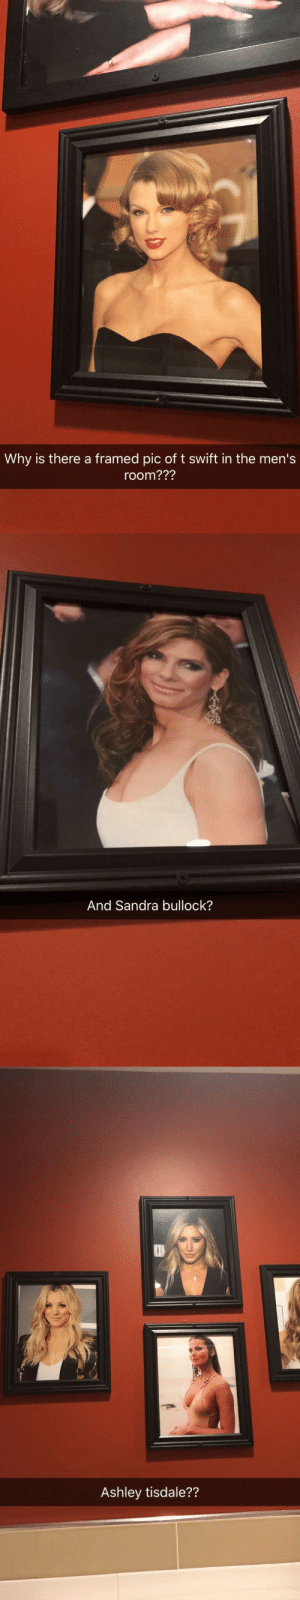 Target, Tumblr, and Blog: Why is there a framed pic of t swift in the men's  room???   And Sandra bullock?   Ashley tisdale?? zackisontumblr: weirdest men's room i've ever been in